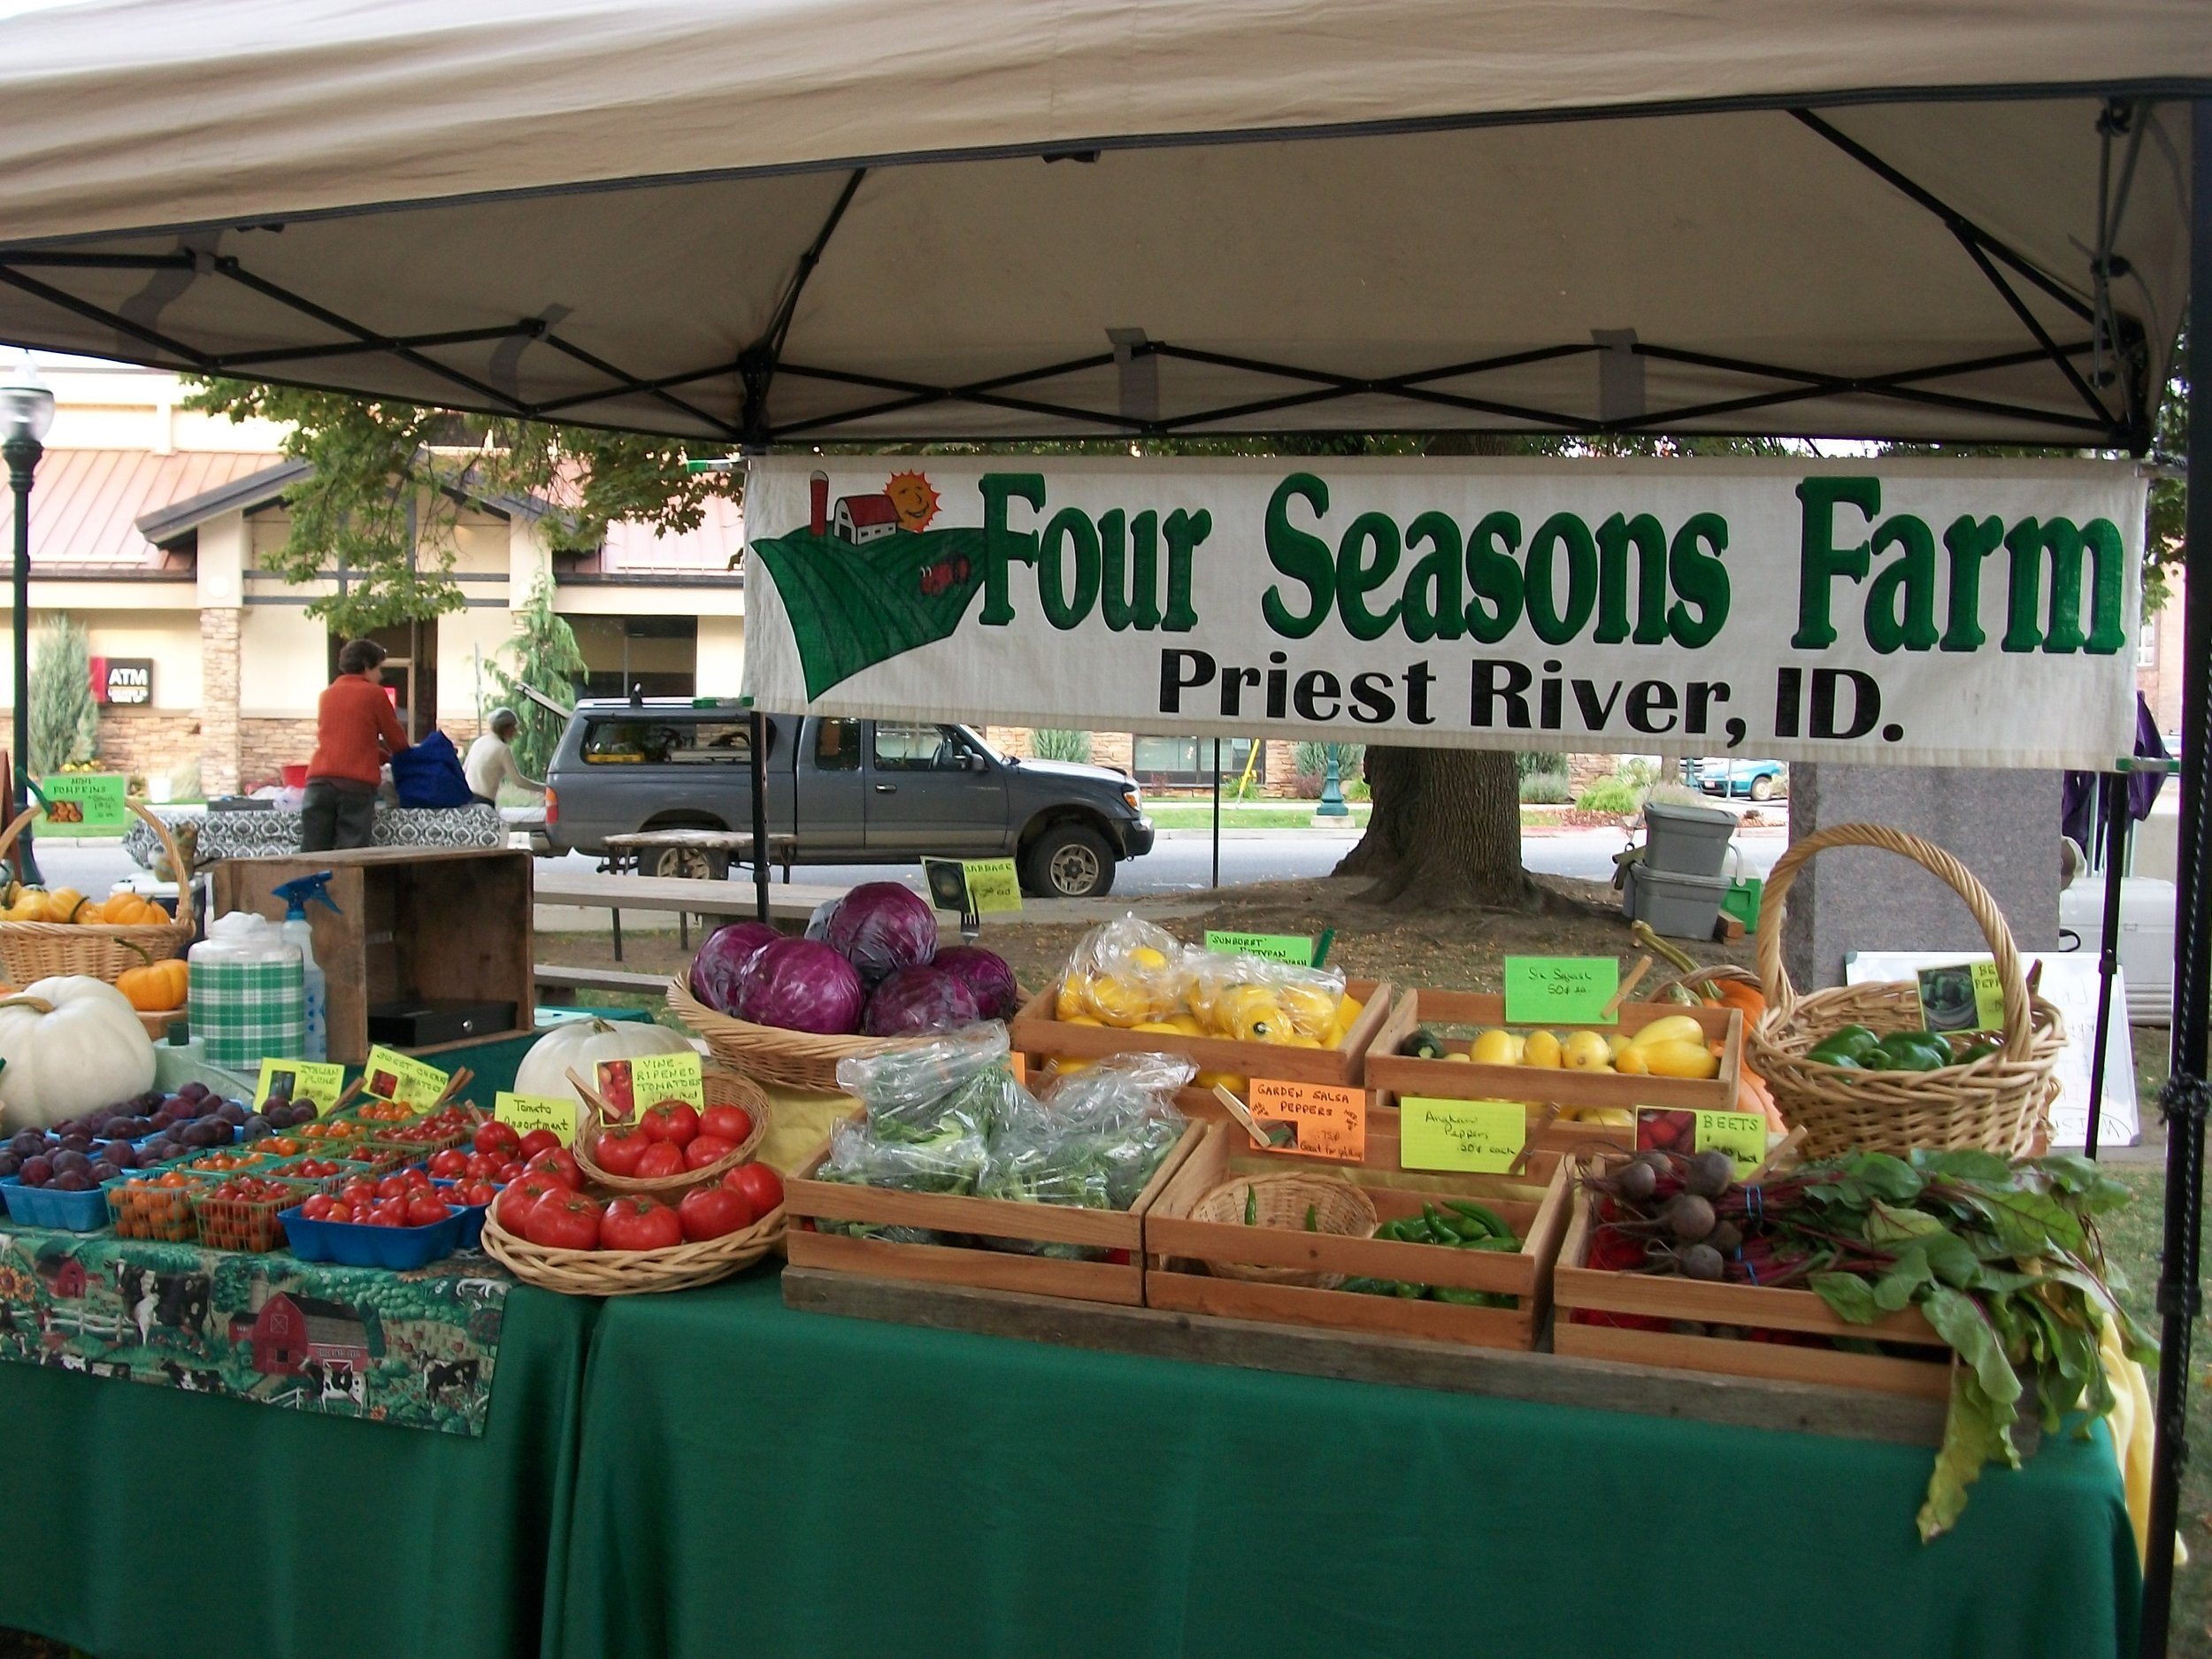 Saturday Farmers Market in Sandpoint, Idaho